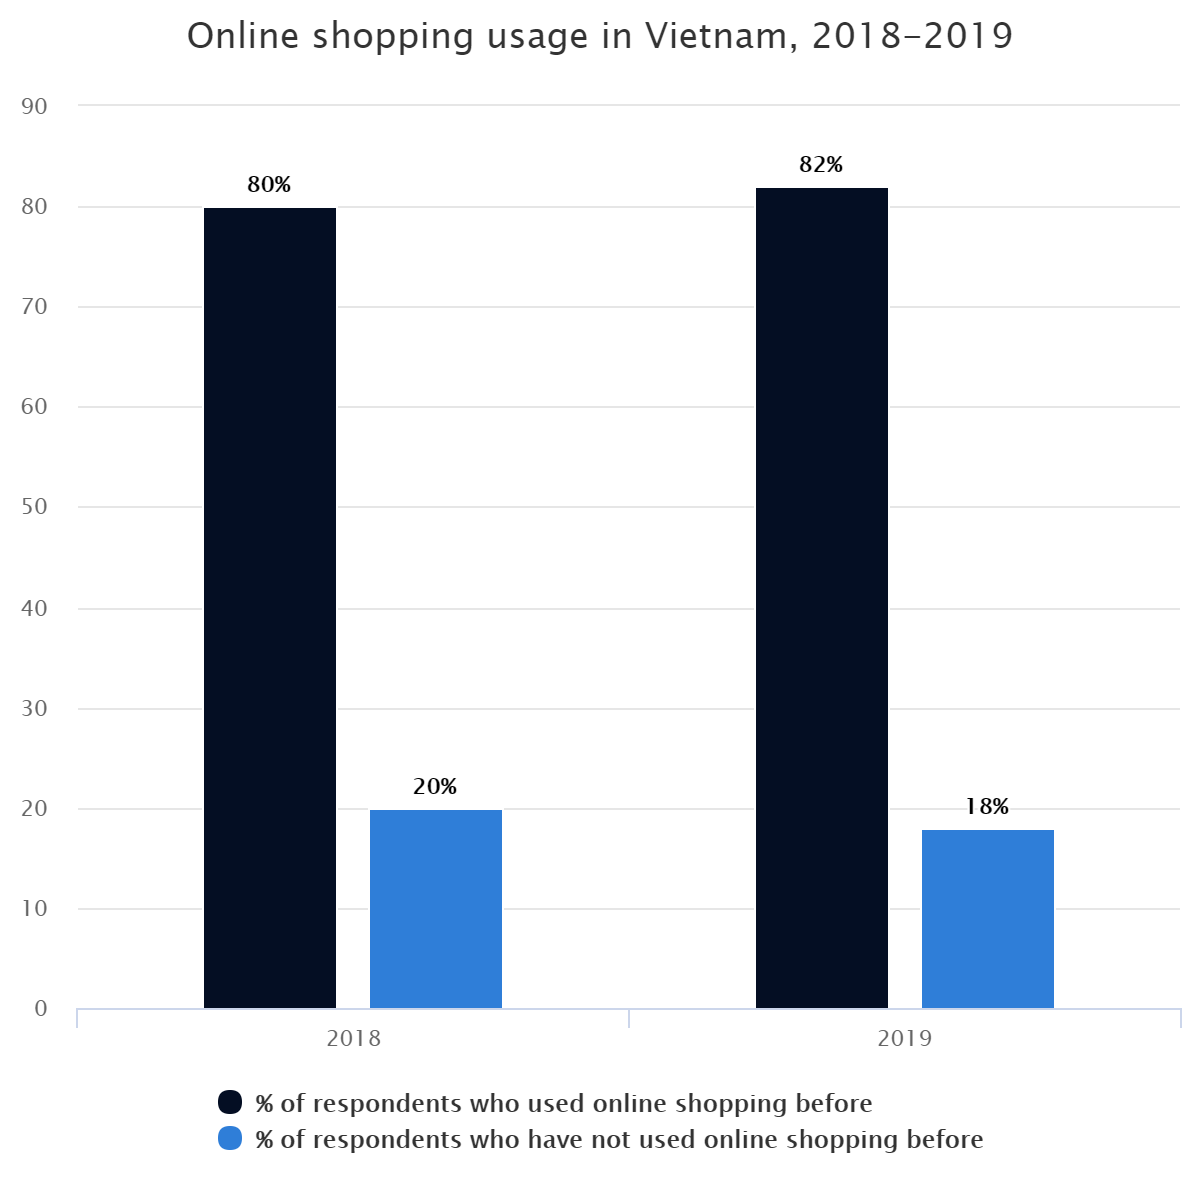 Online shopping usage in Vietnam, 2018-2019